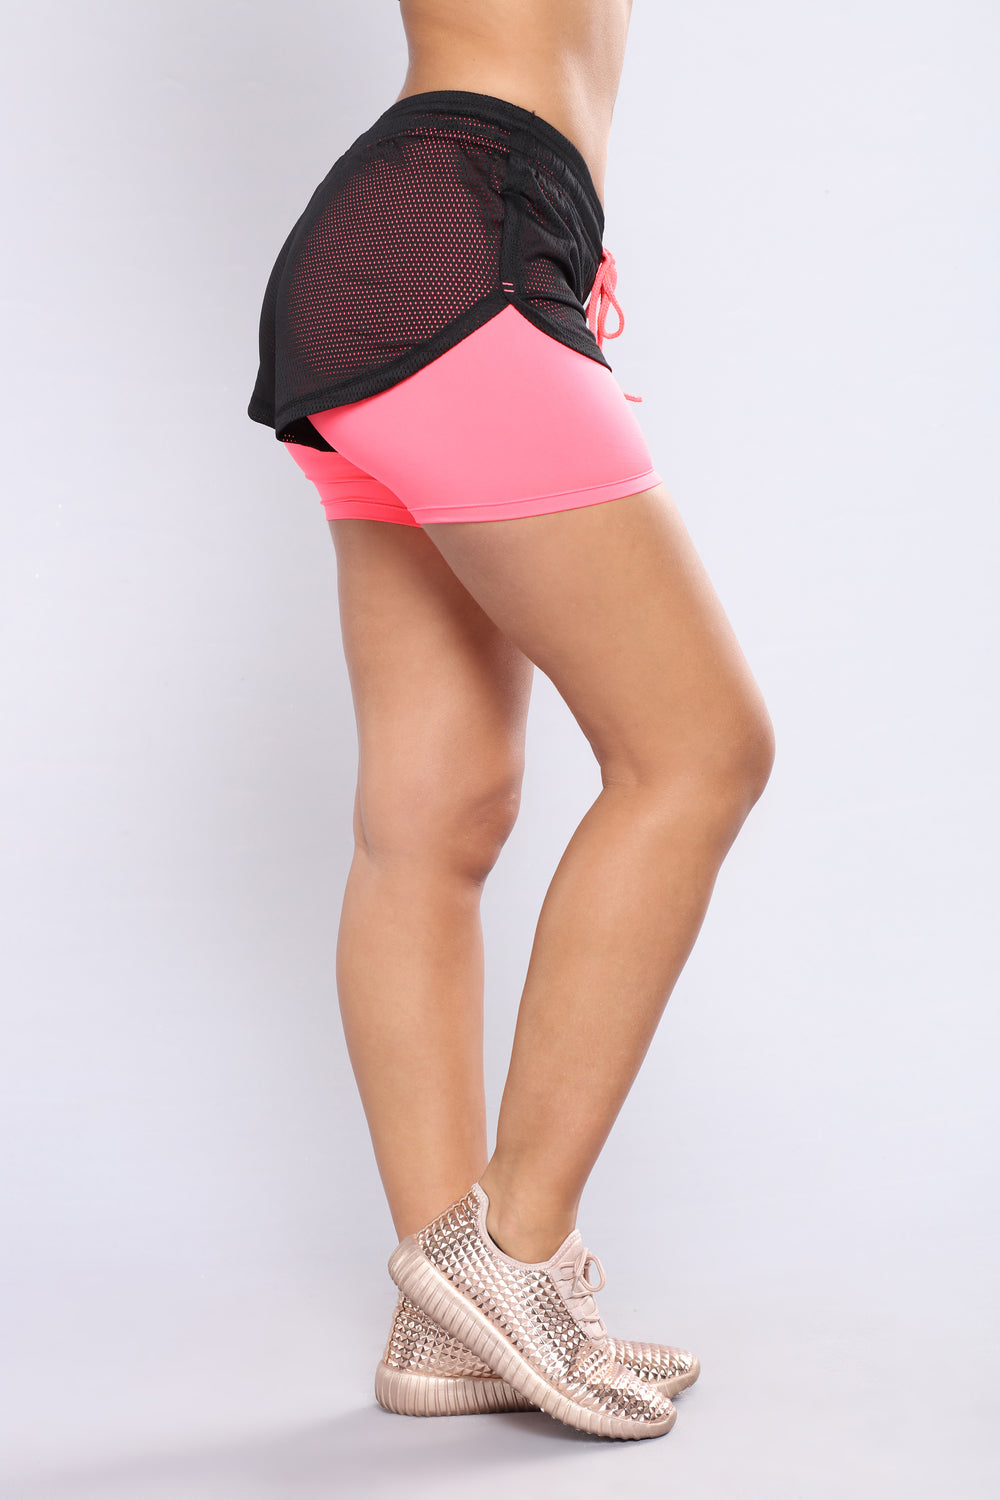 The Run Around Active Shorts - Black/Coral